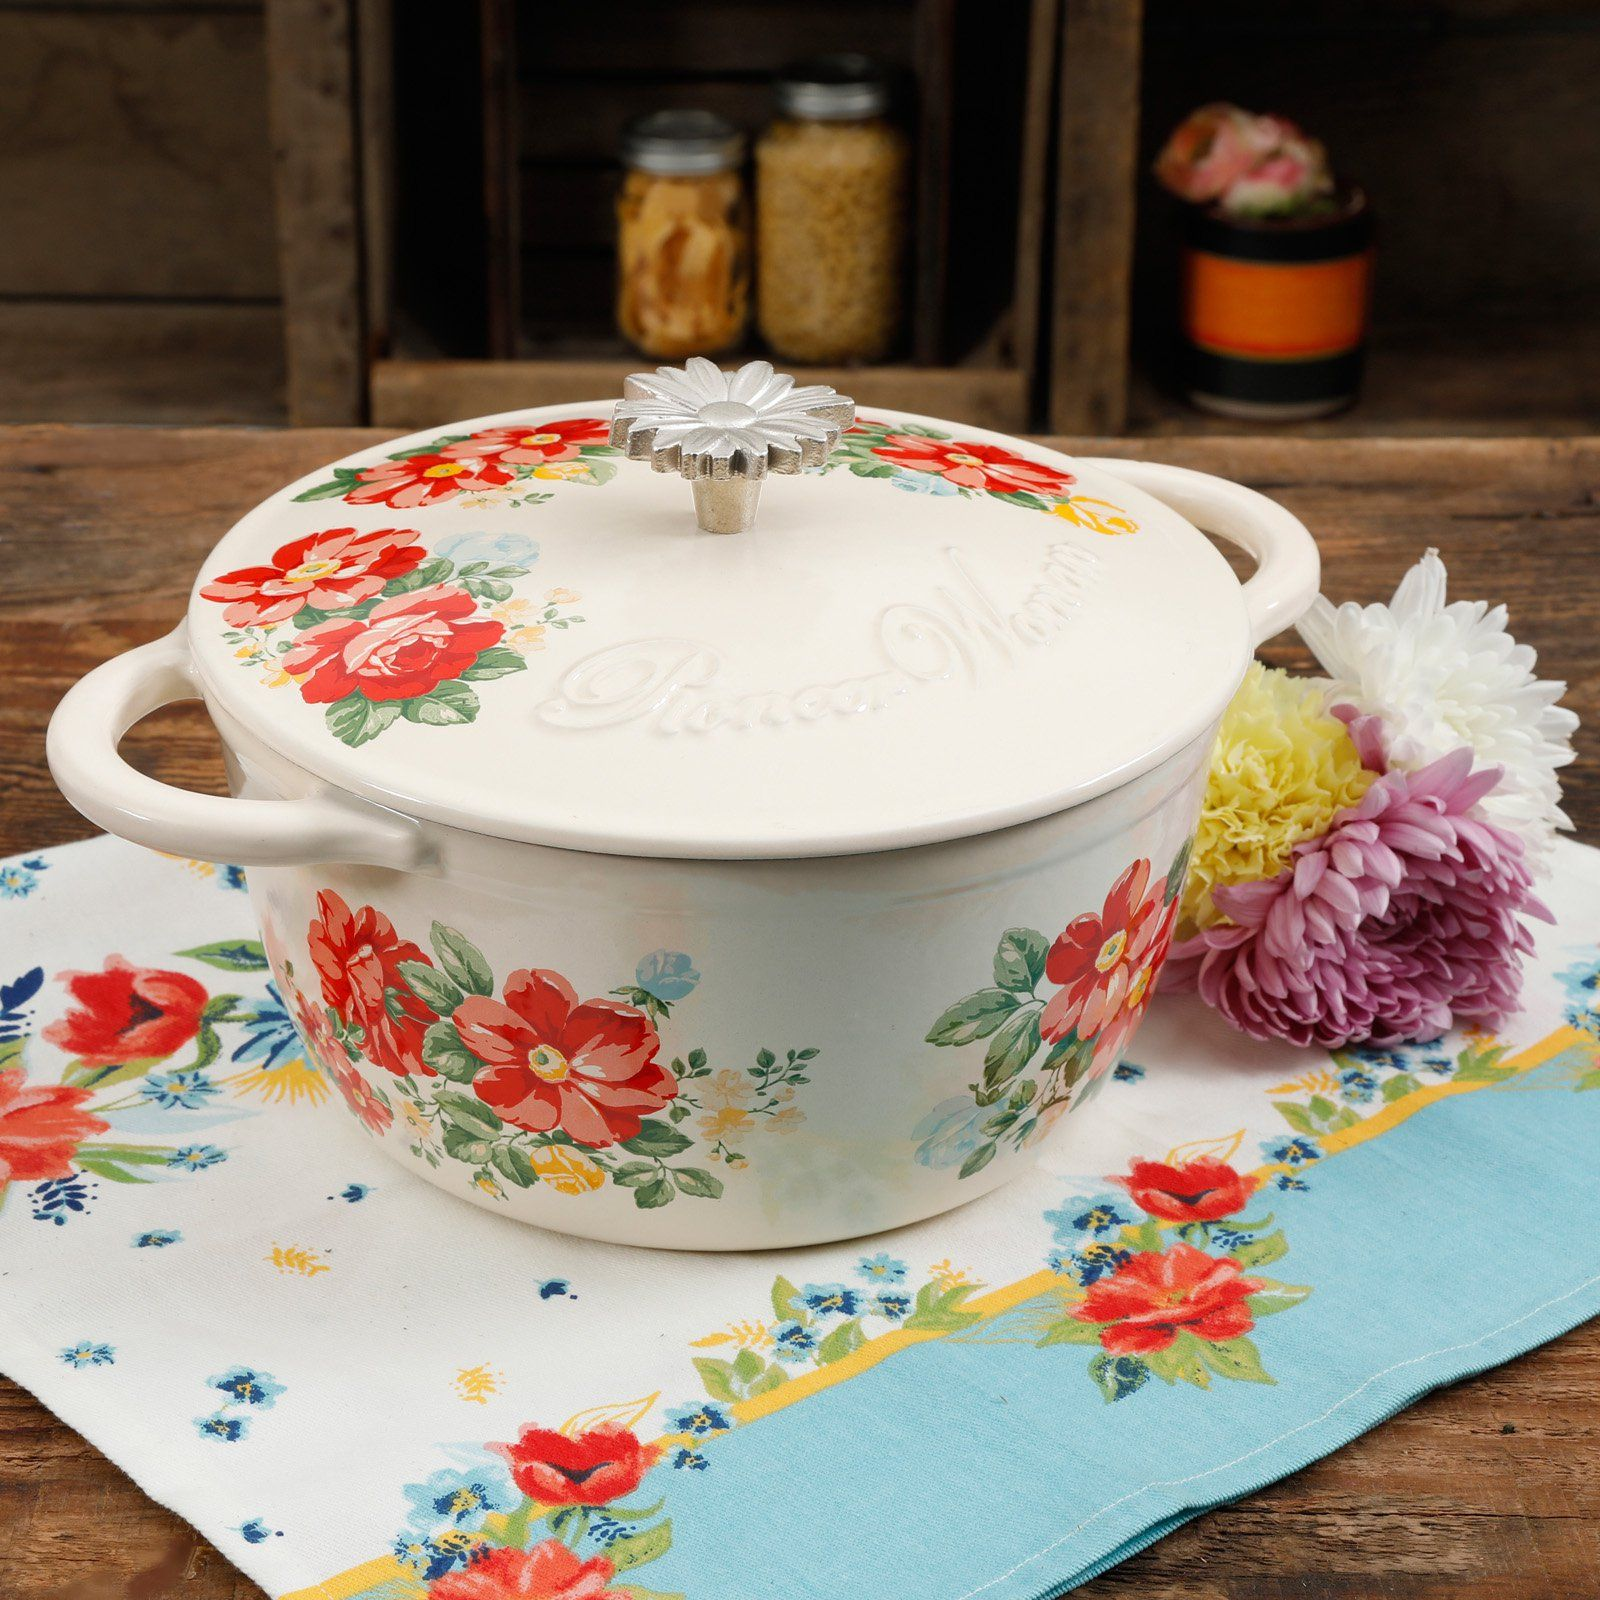 The Pioneer Woman Enamel On Steel Multi-Color Charming Floral Garden 4-Quart Dutch Oven